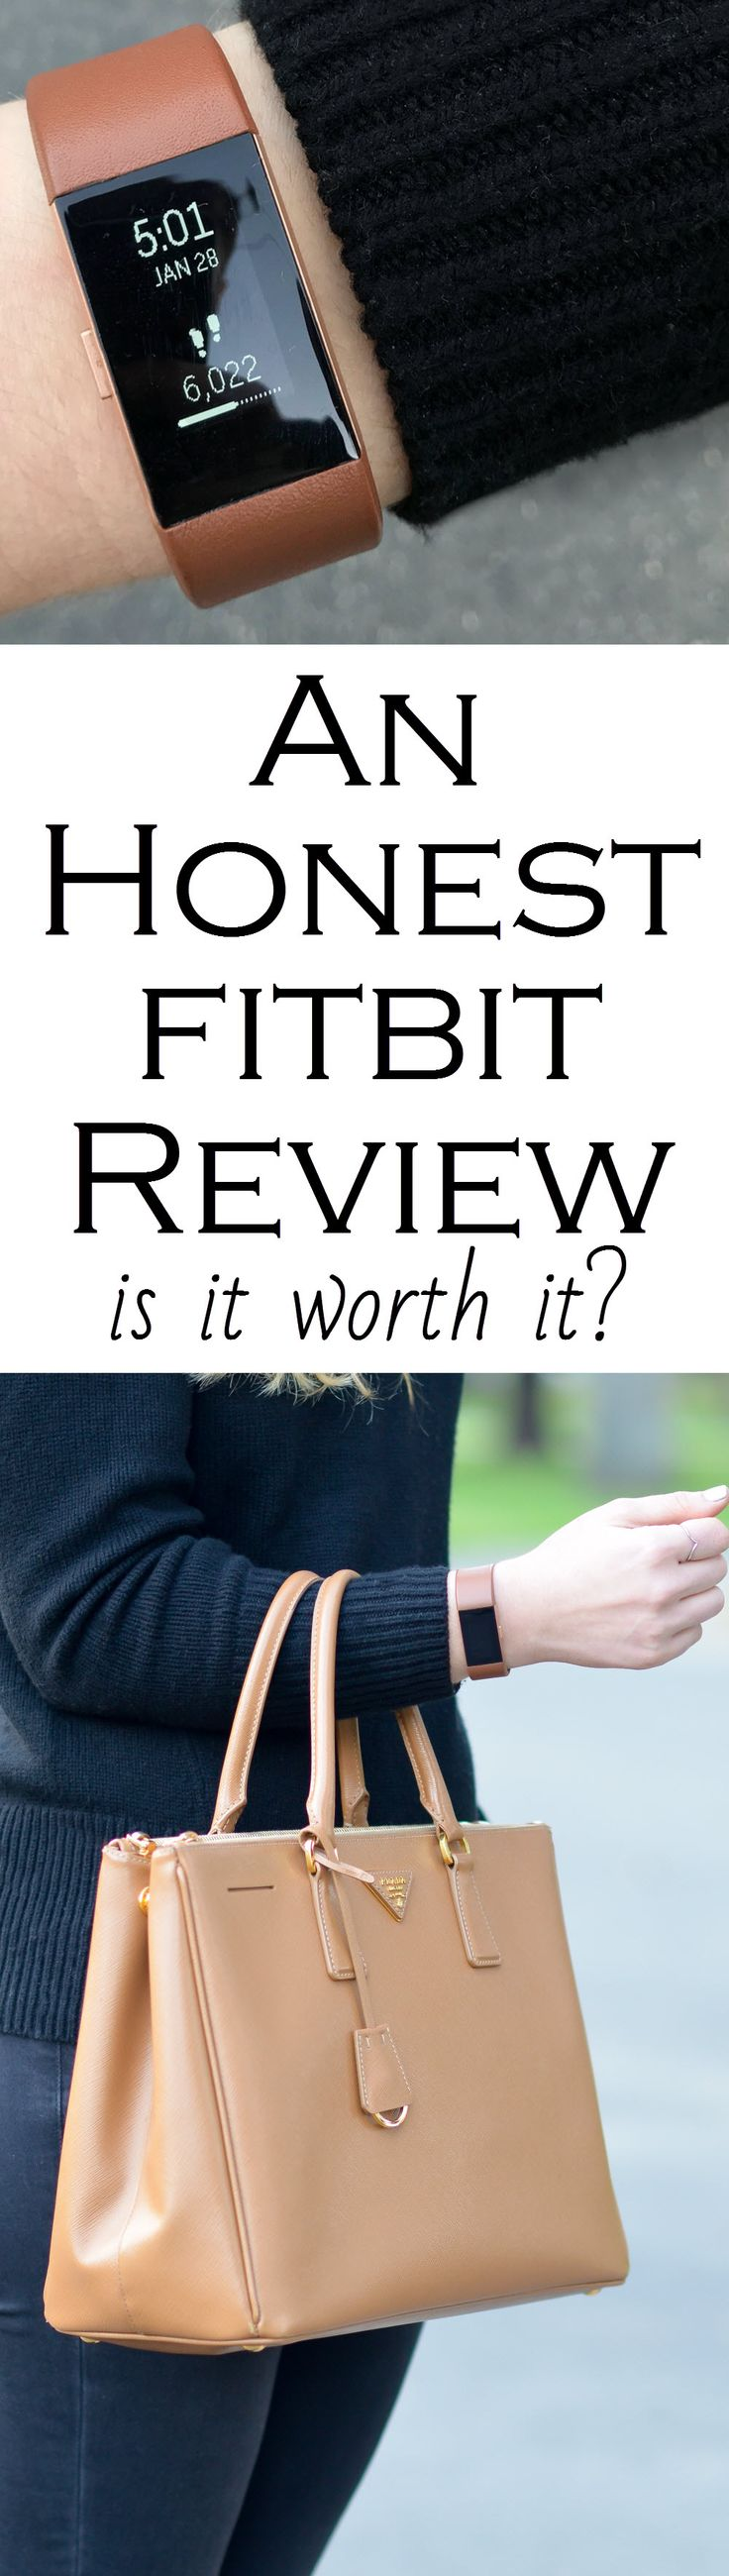 An Honest Fitbit Review. Is it really worth it? Read the positives and negatives about having a Charge 2 Fitbit. Is it worth the price? Has my body changed? The answer may surprise you!   (Outfit Photos - Brown Leather Band)